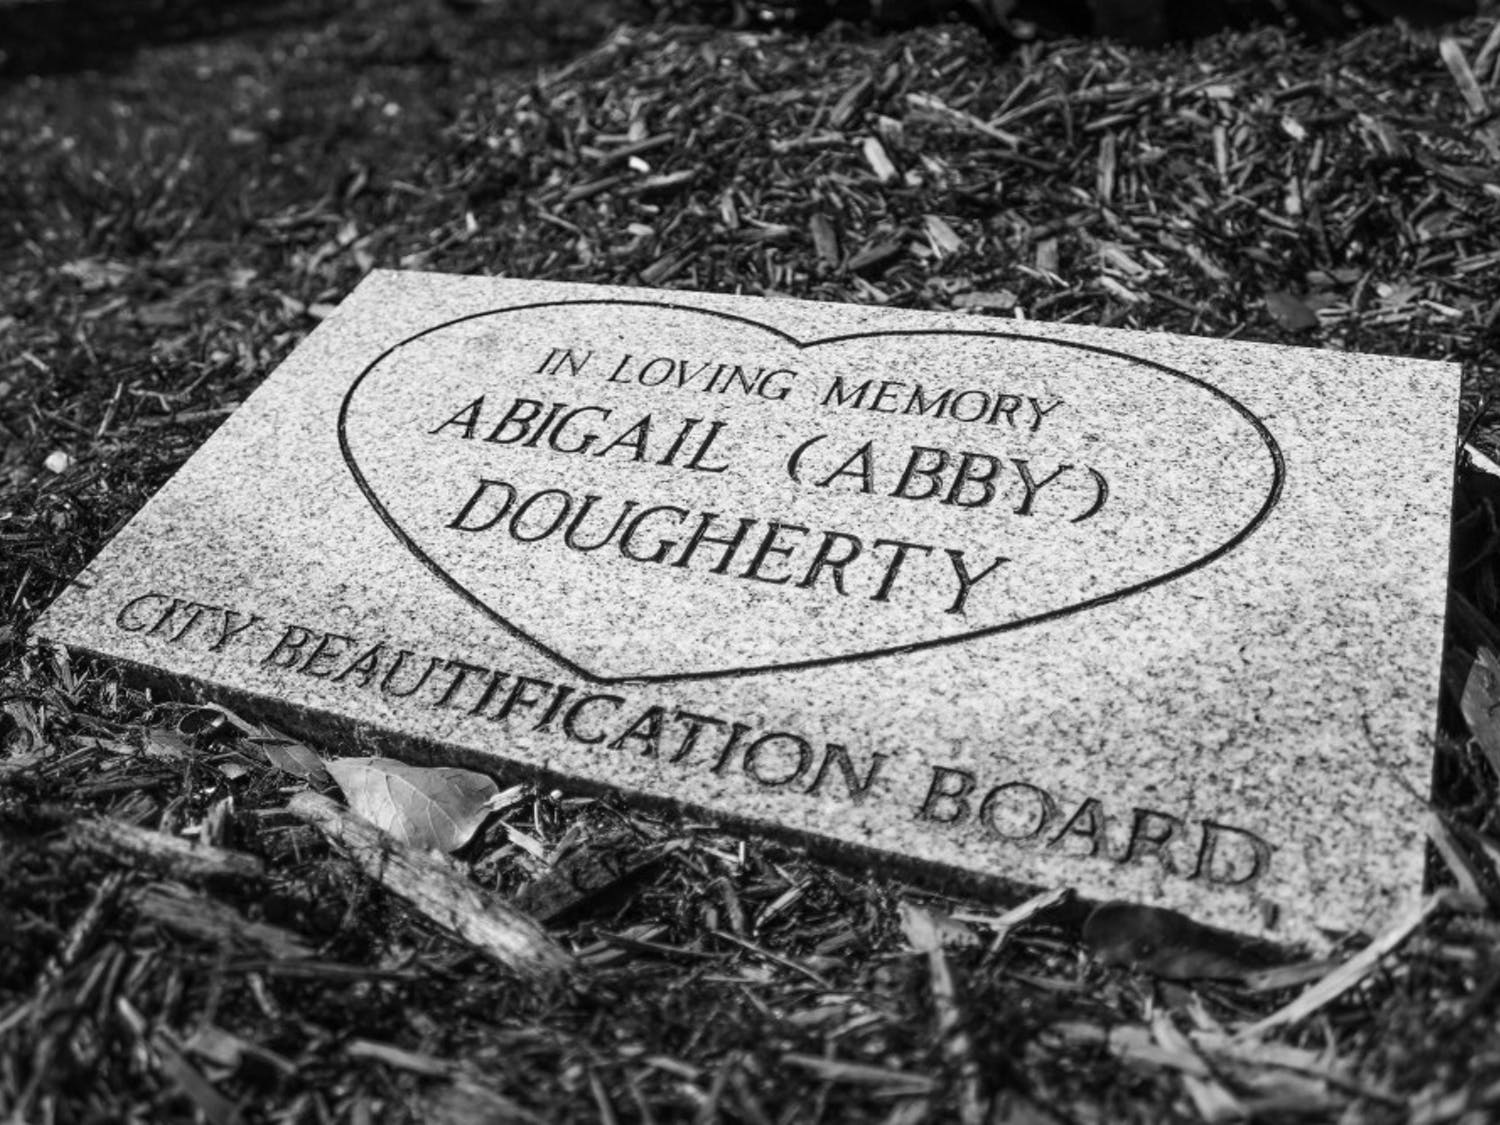 A close-up of the plaque that was made in honor of Abigail Dougherty. The plaque rests below the southern magnolia treeplanted for Dougherty on Thursday.